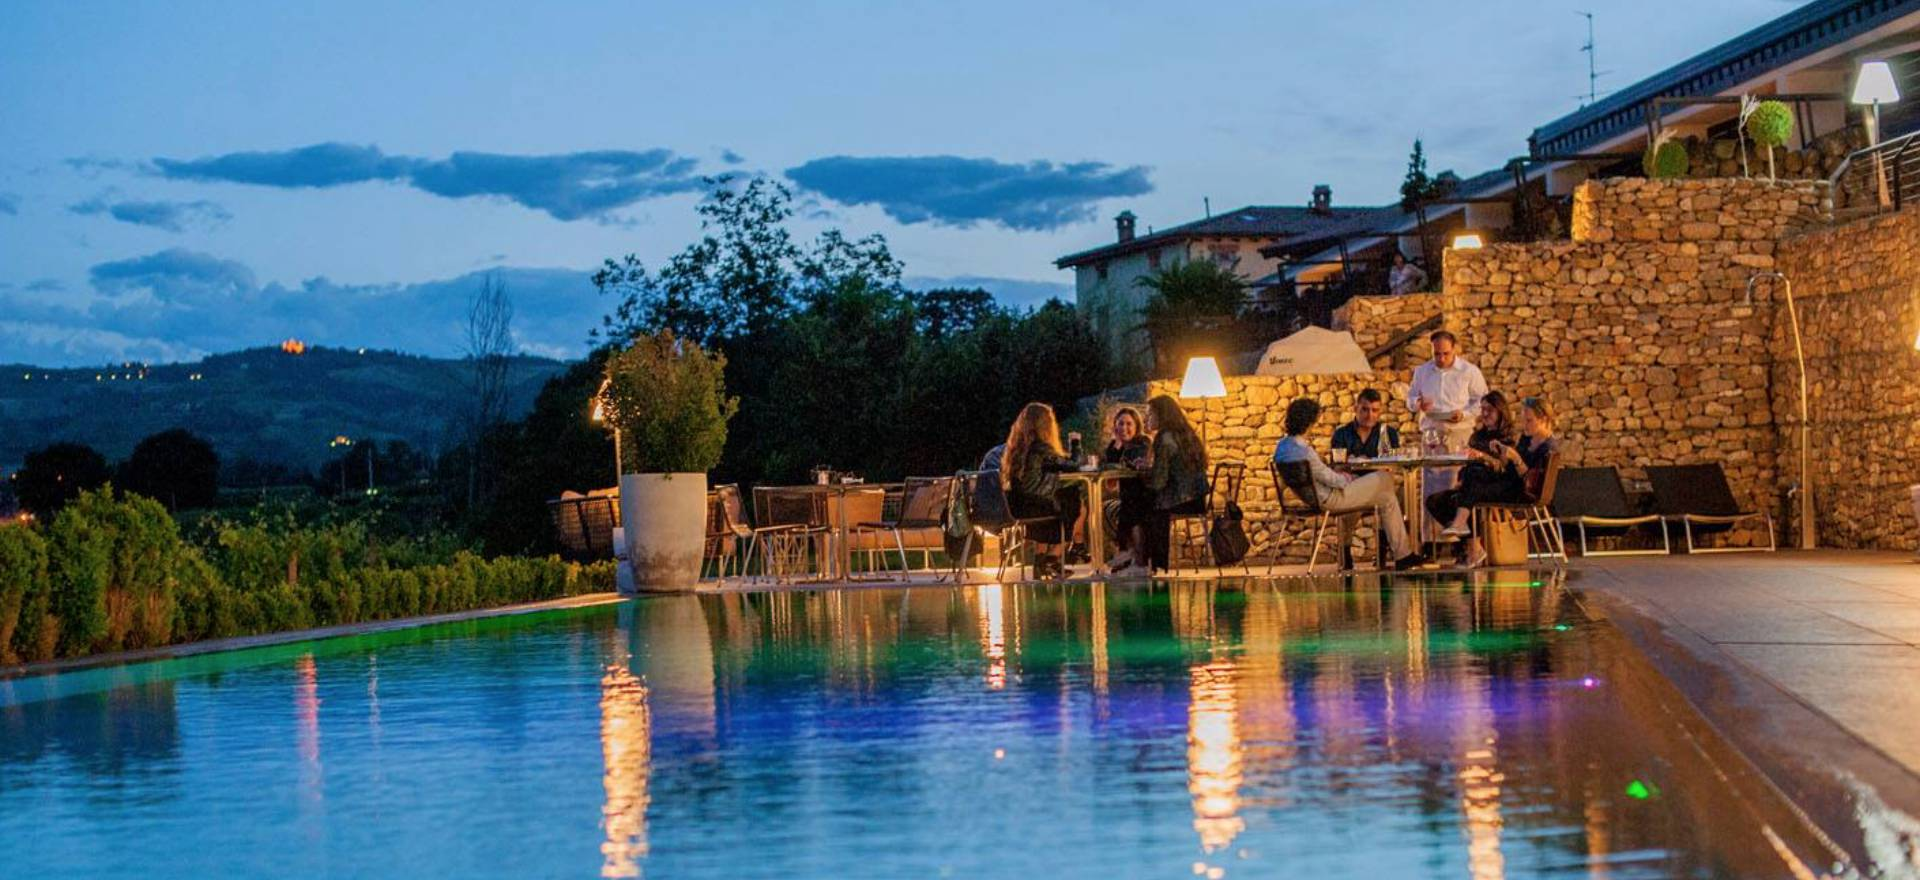 Agriturismo Emilia Romagna Agriturismo with relaxed atmosphere and good cuisine